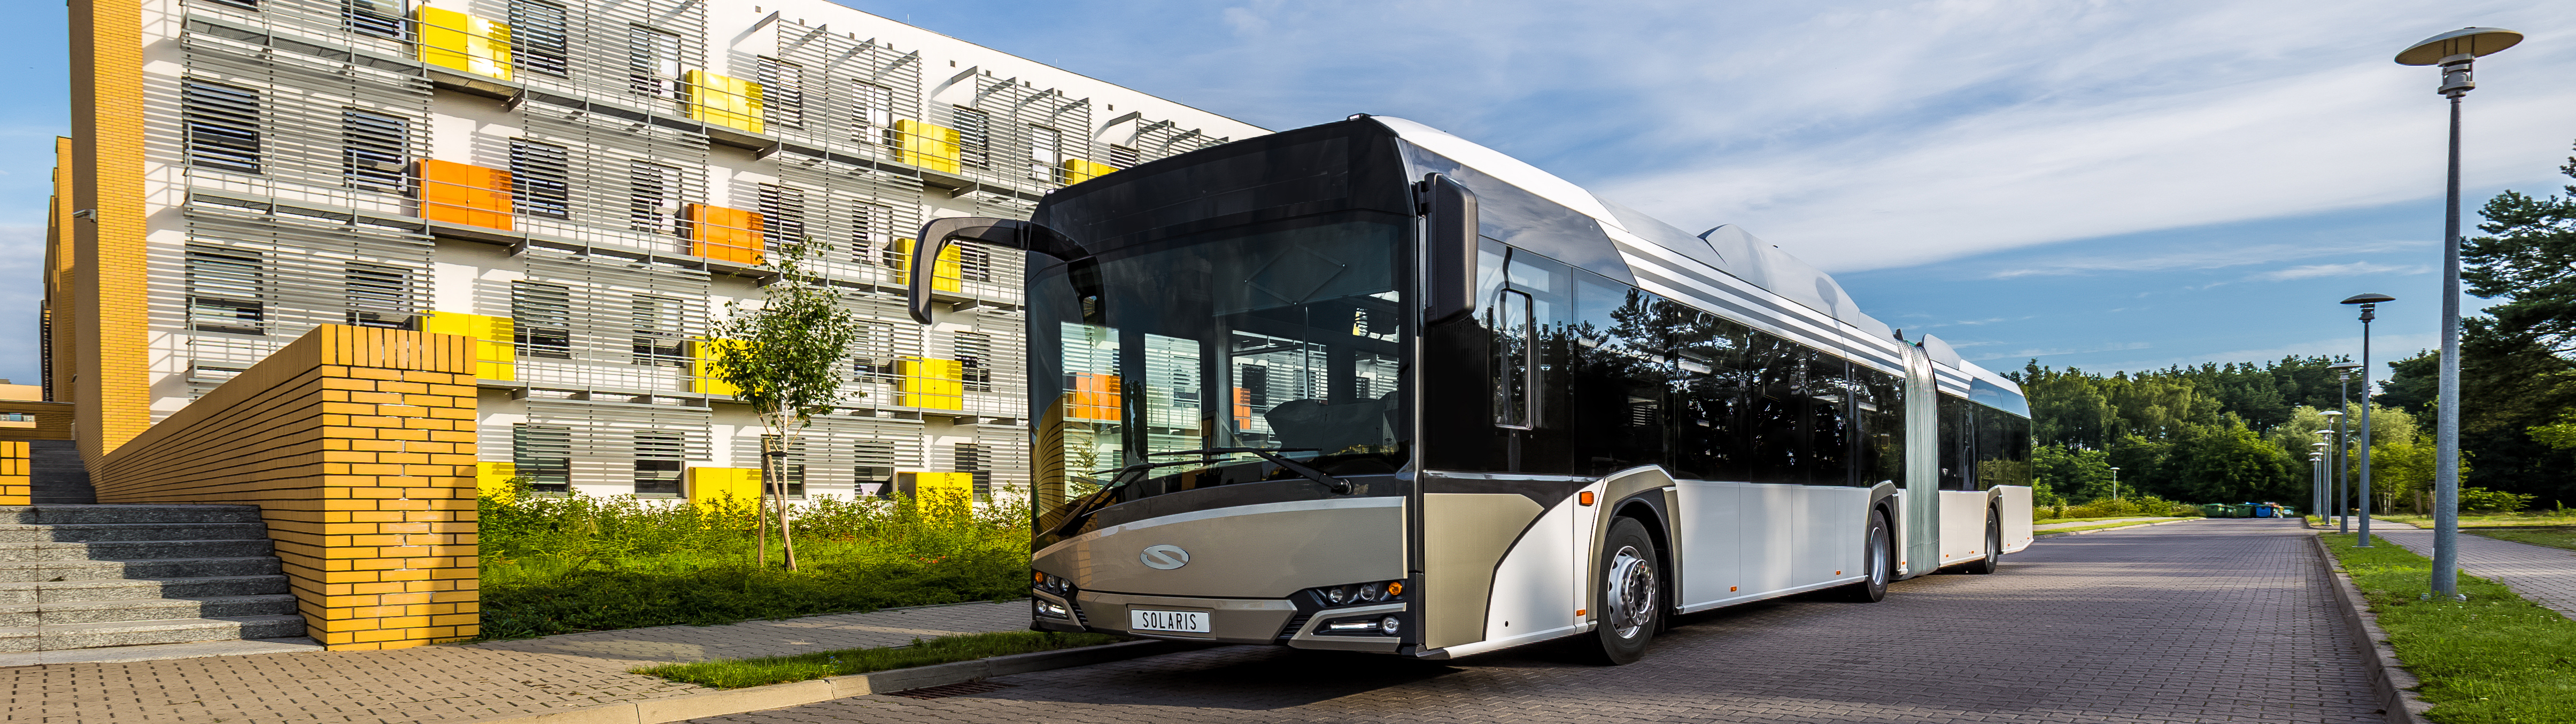 Electric Solaris buses travel to Luxembourg